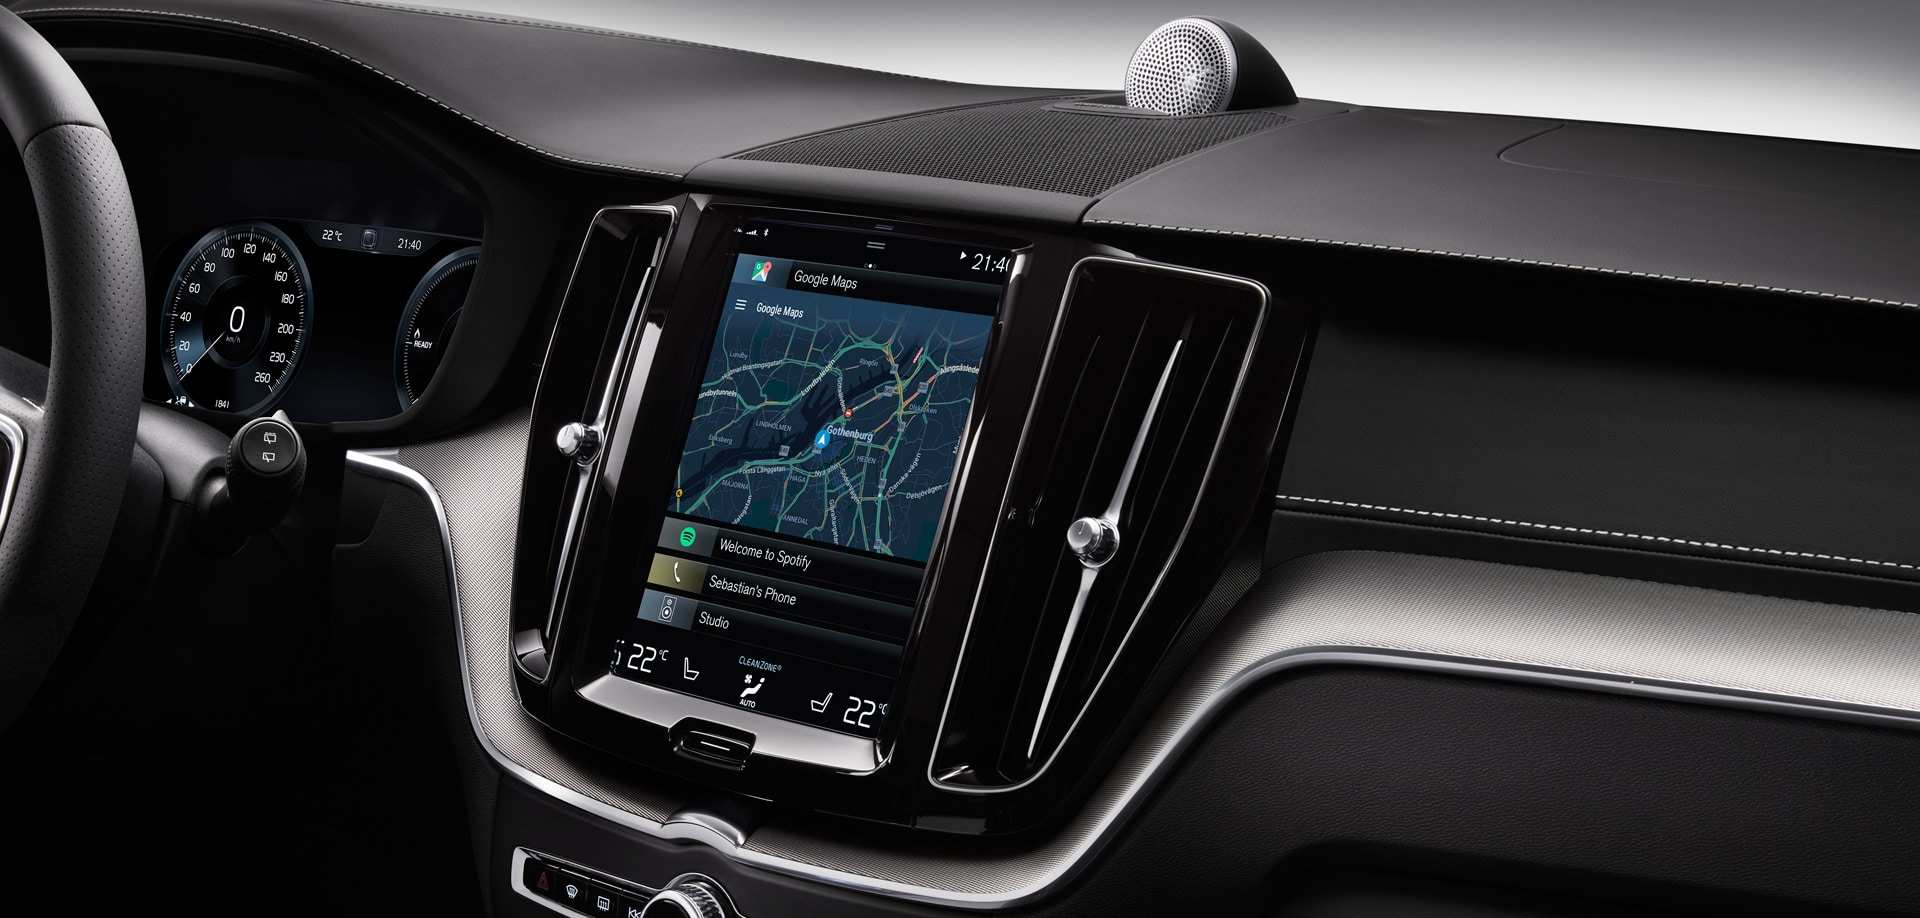 61 New Volvo 2020 Android Review And Release Date